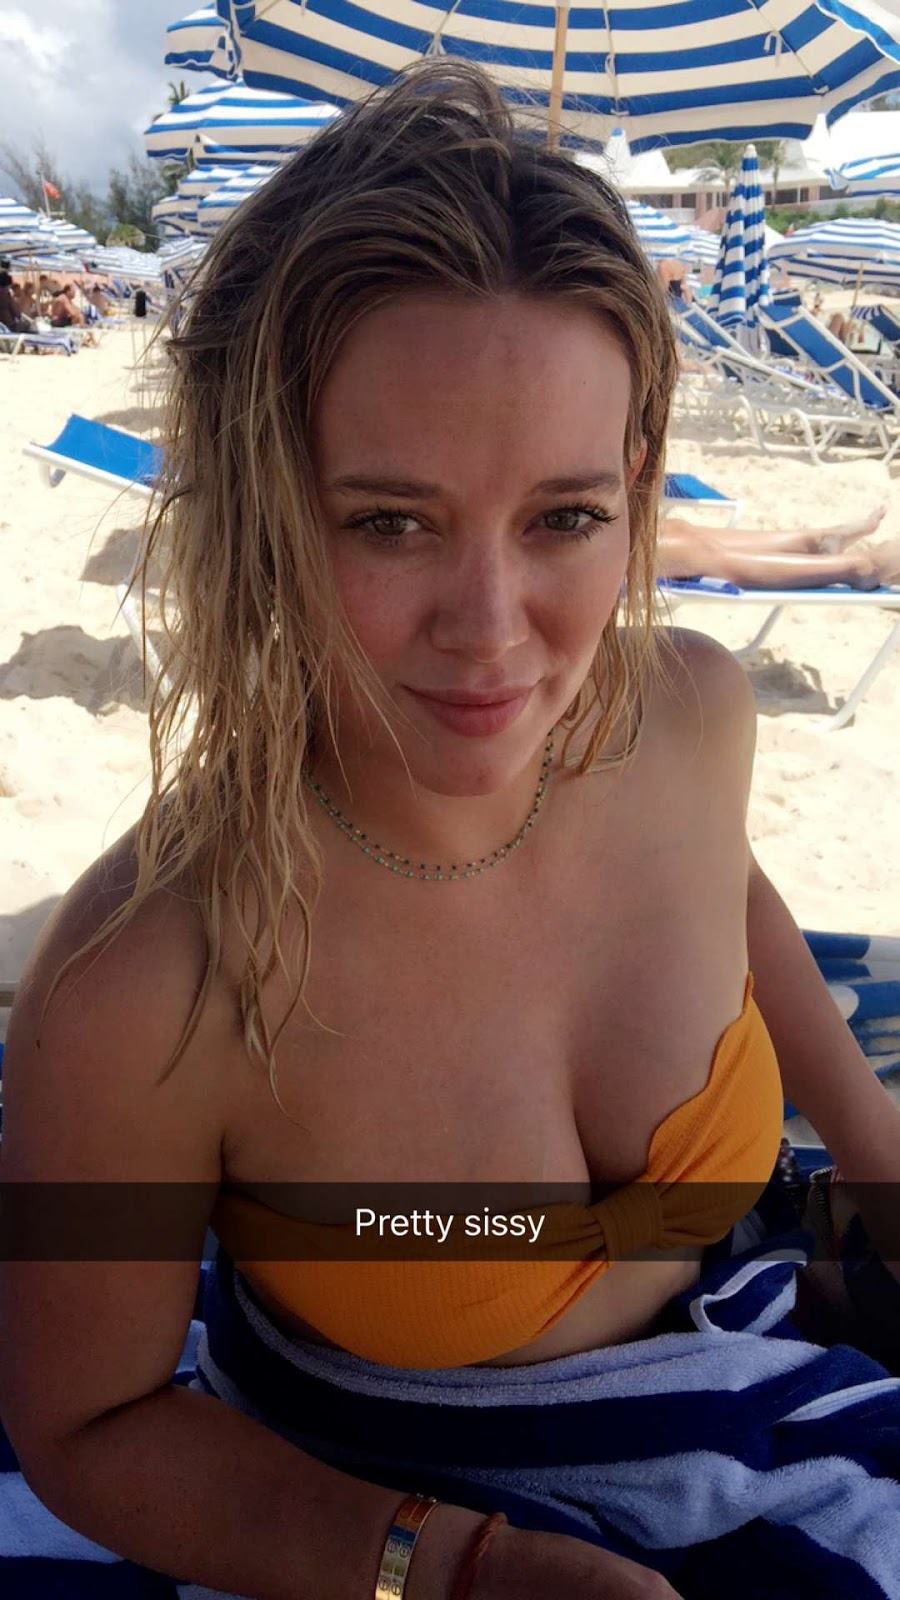 Sideboobs Ashley Benson naked (62 foto and video), Topless, Cleavage, Instagram, swimsuit 2018